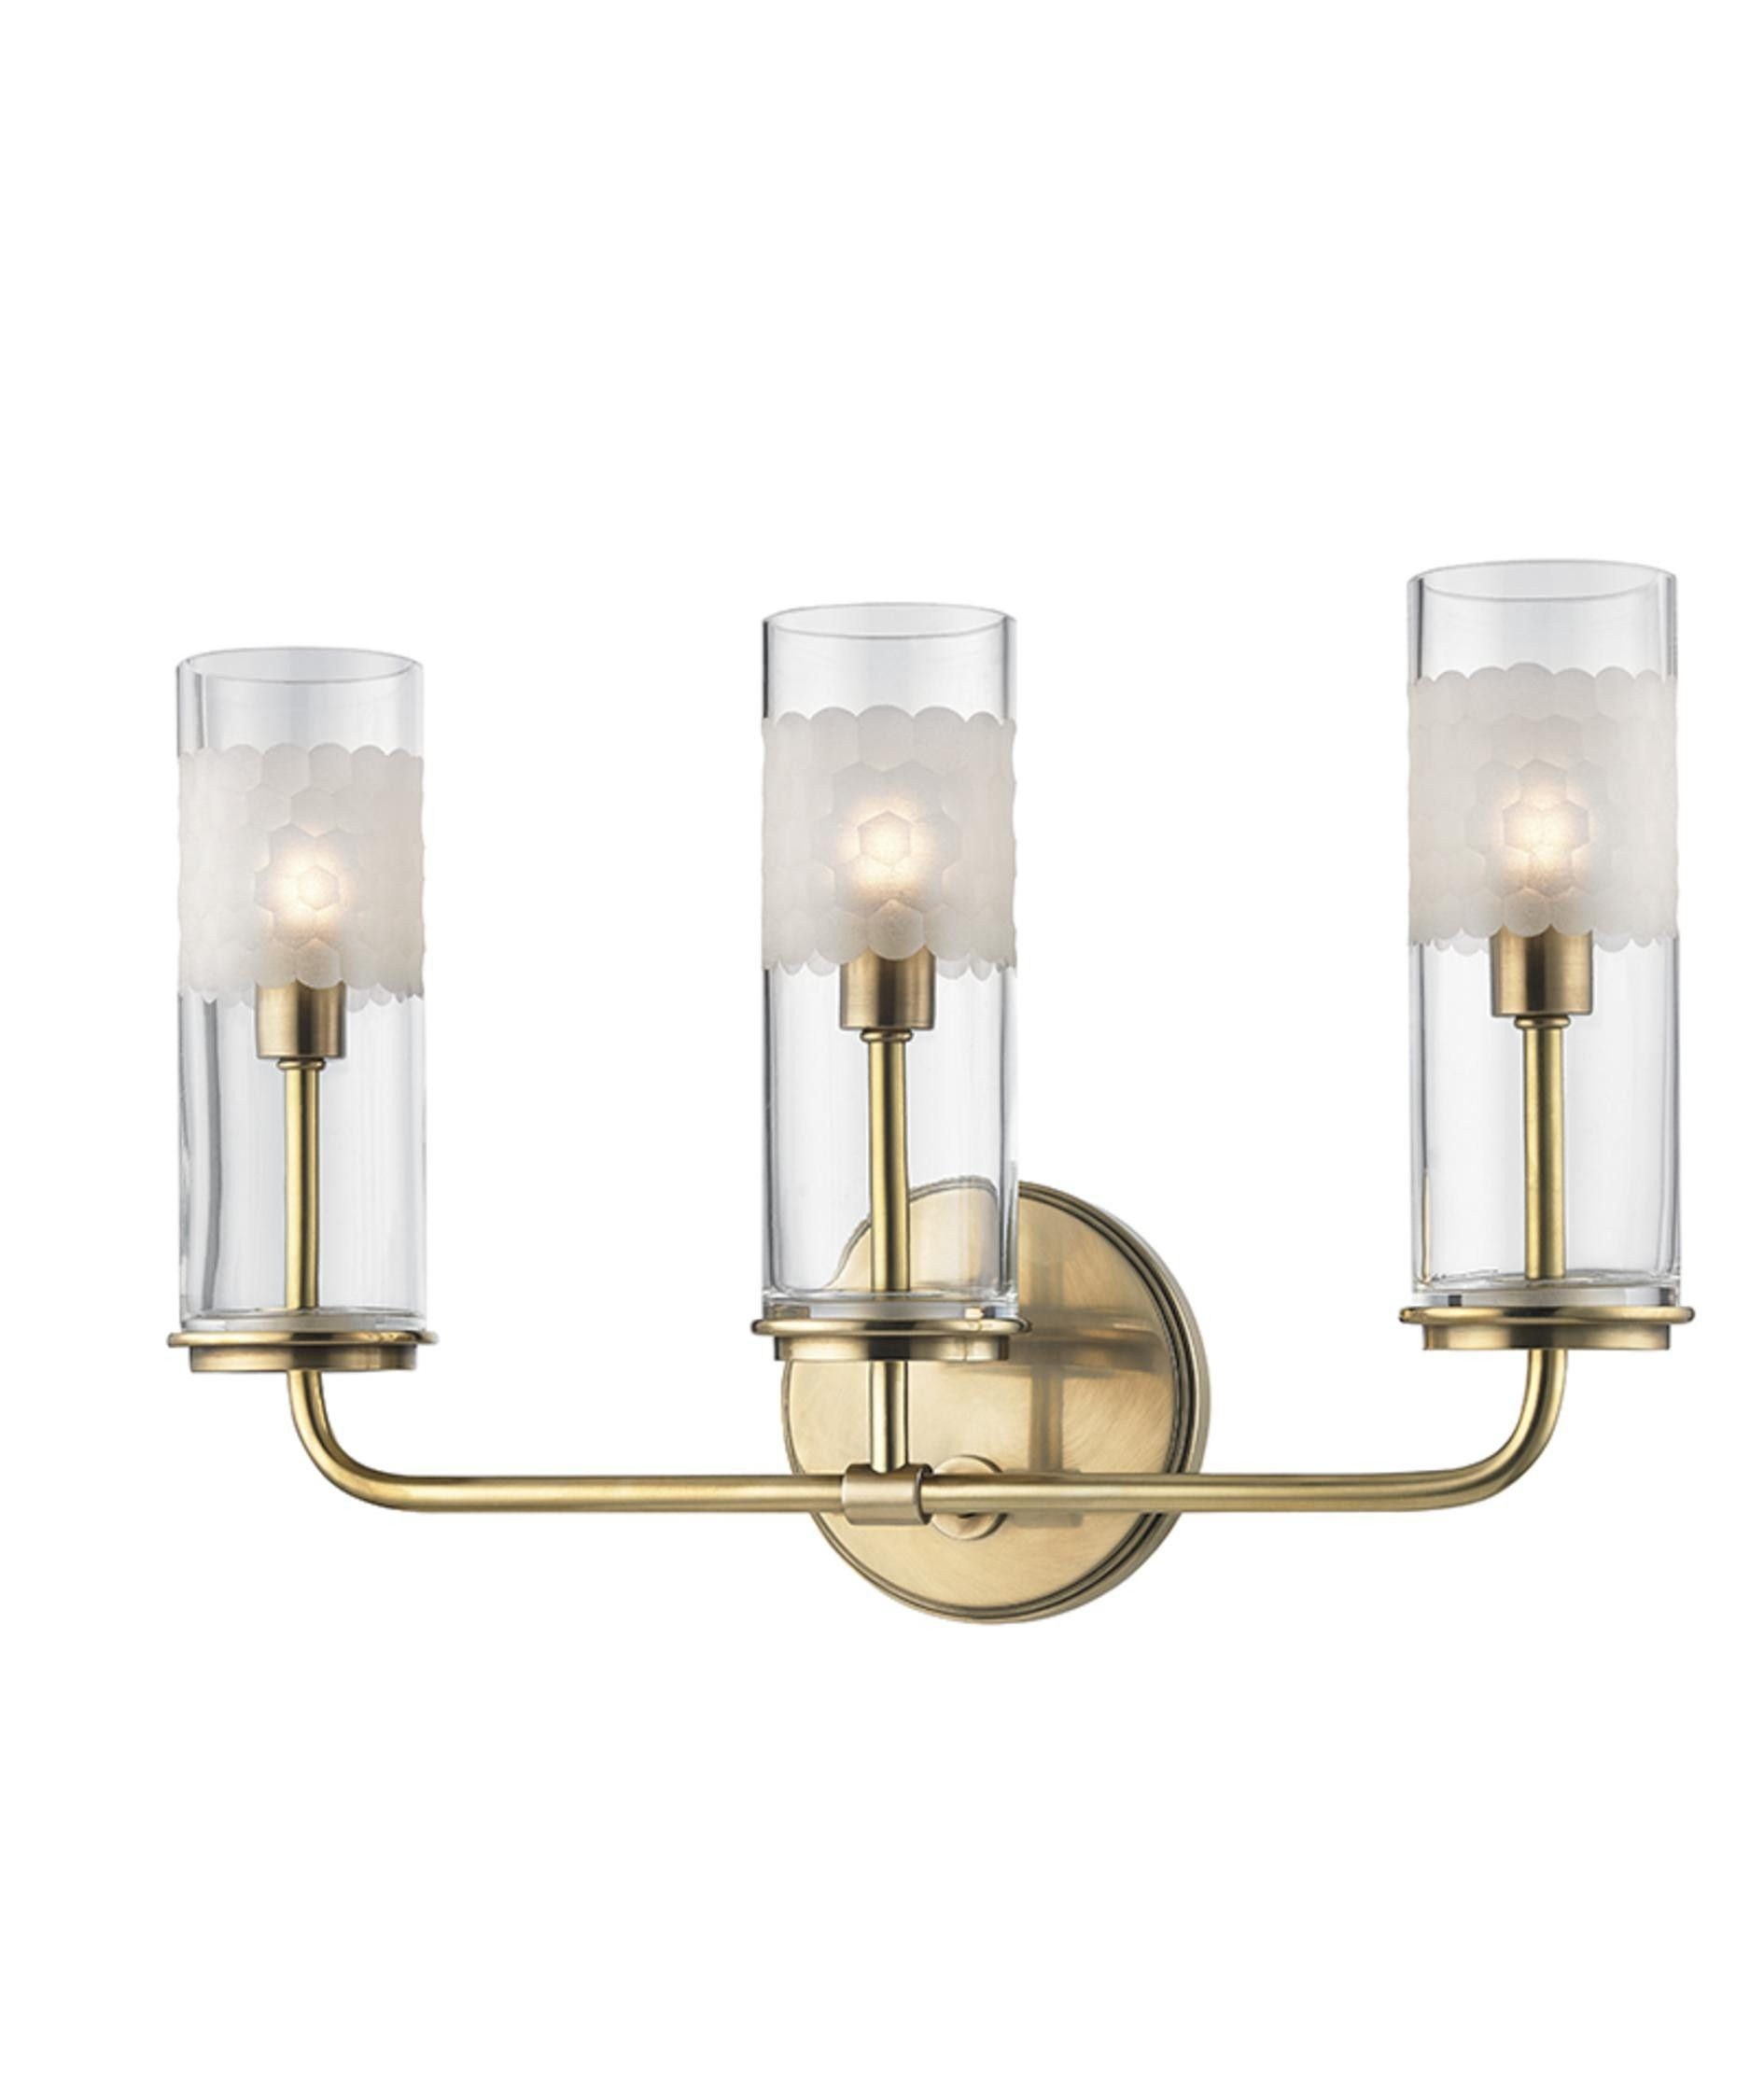 Bathroom Lighting Sconces purposes of bathroom lighting sconces design si Lighting Bathroom Sconce Modern Sconce Hanging Chandeliers Exterior Lighting Fixtures Antique Brass Chandeliers 1